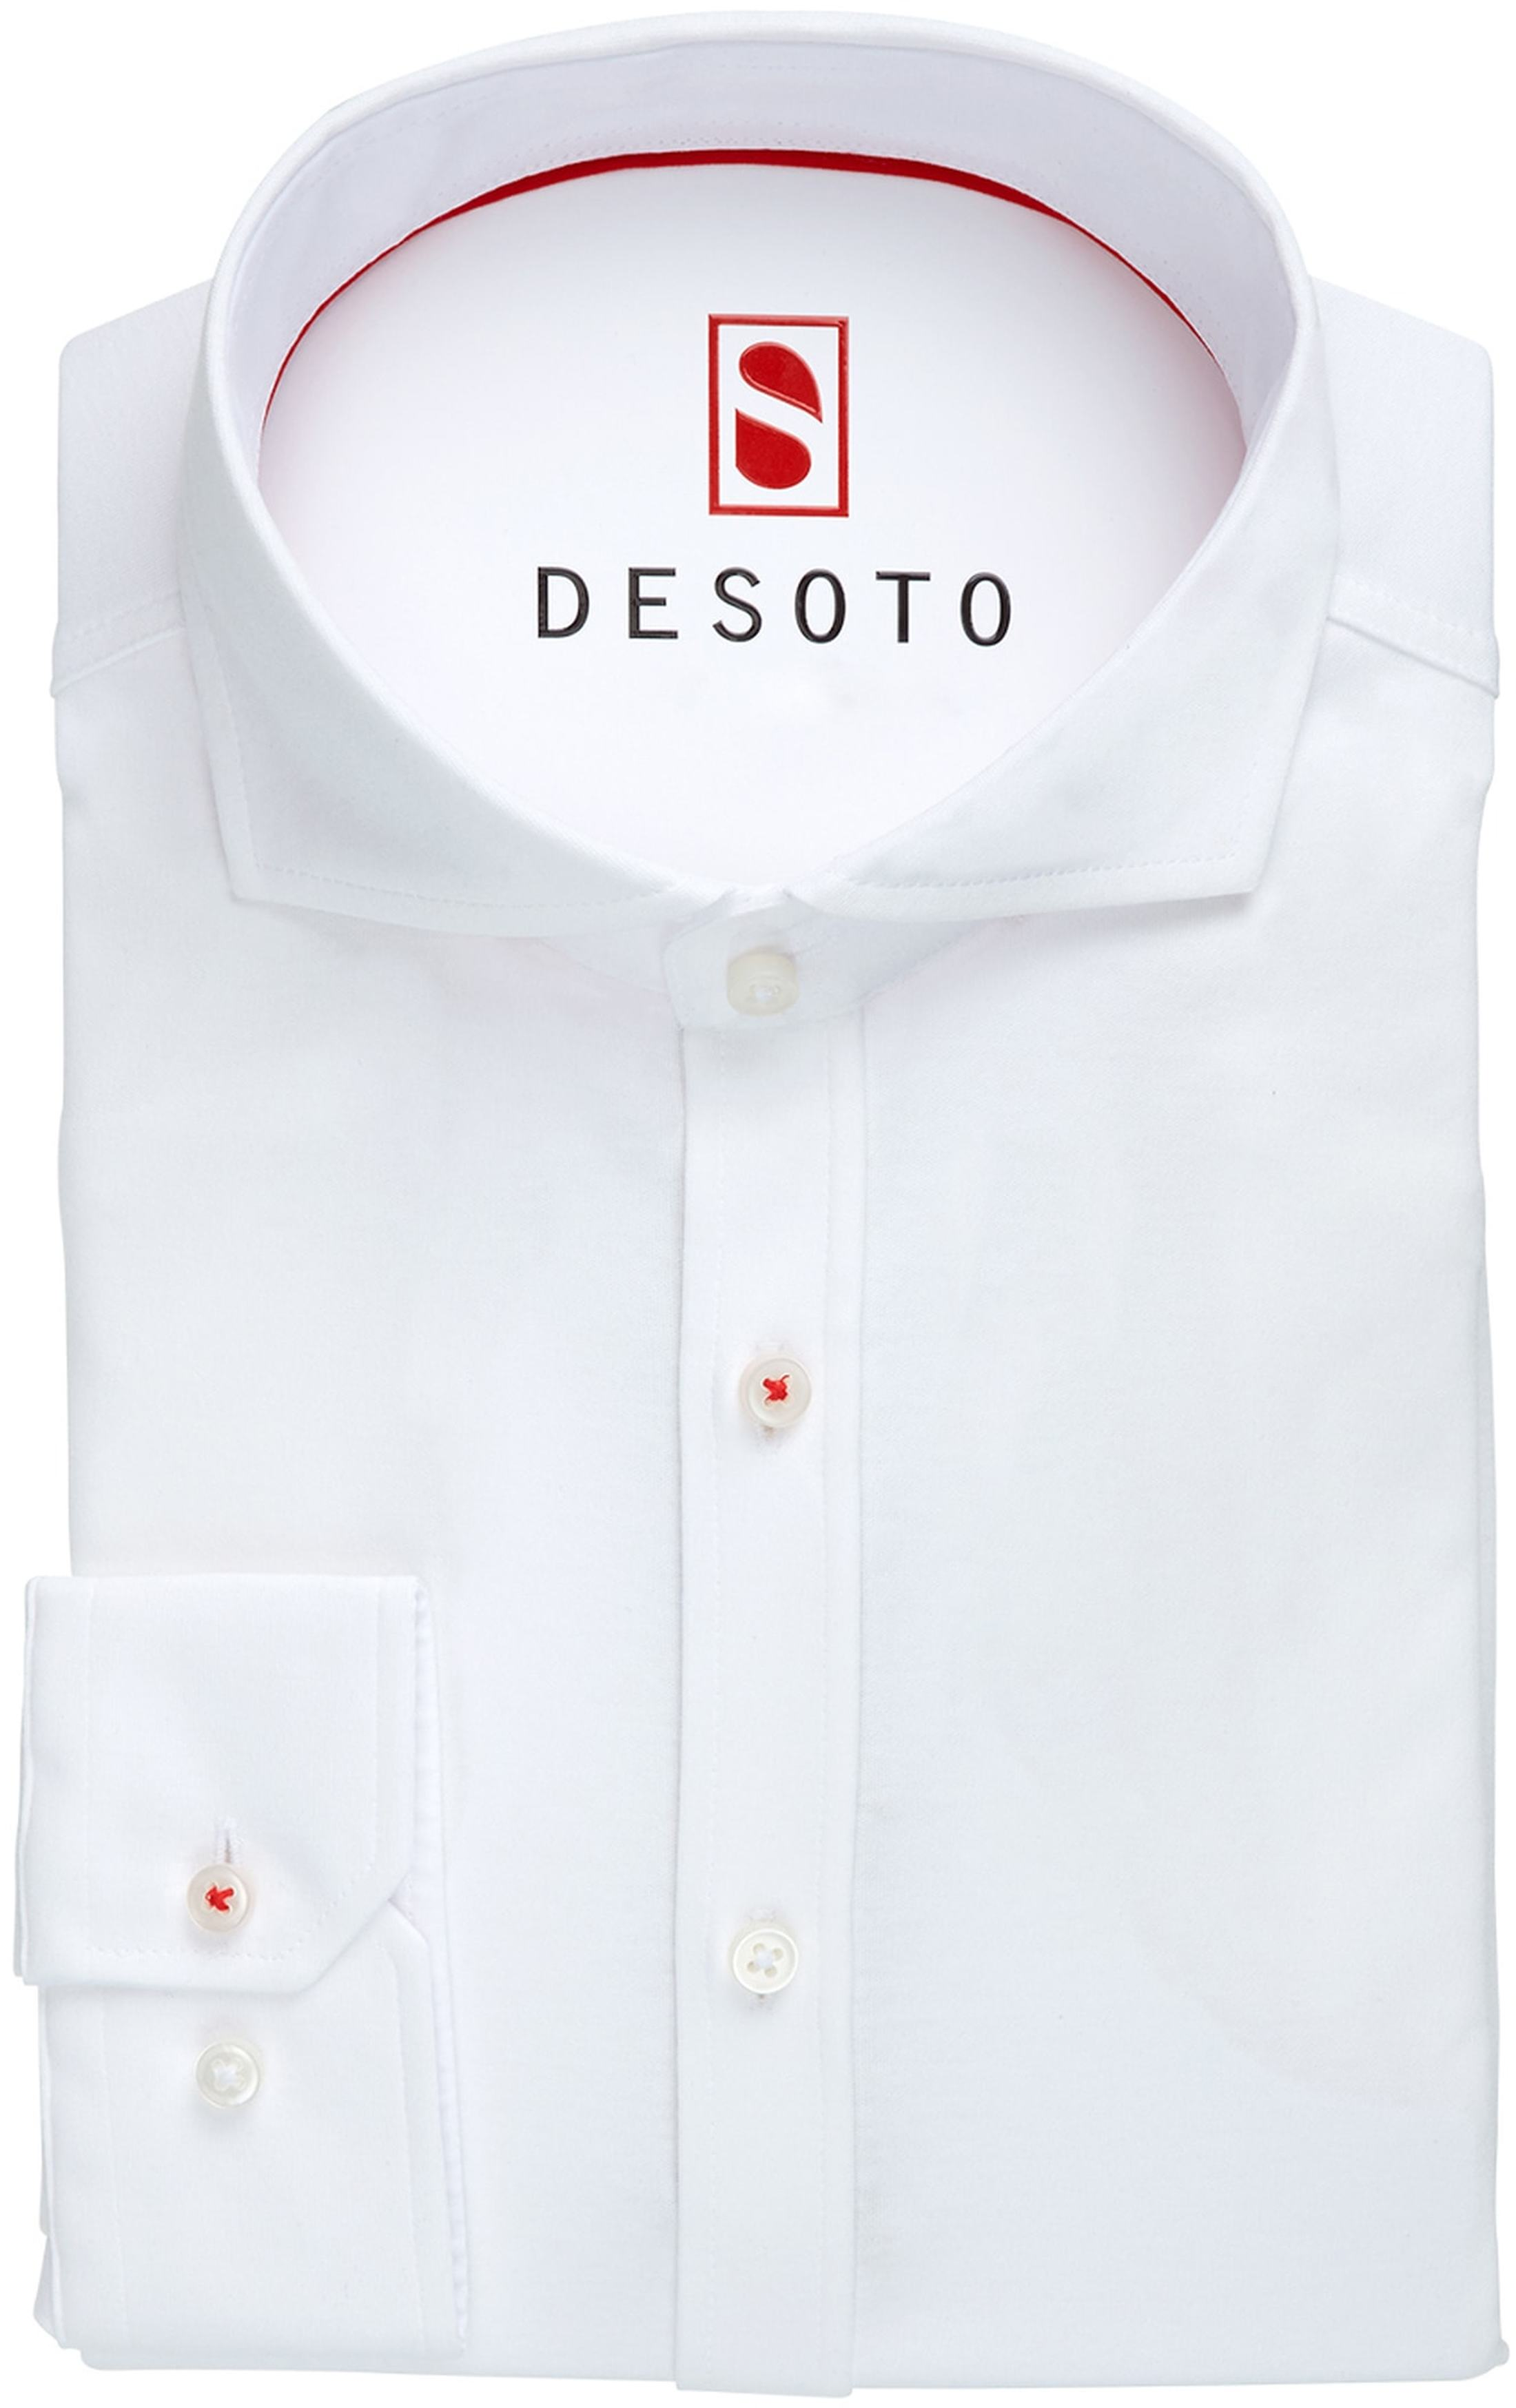 Desoto Shirt Non Iron White foto 2